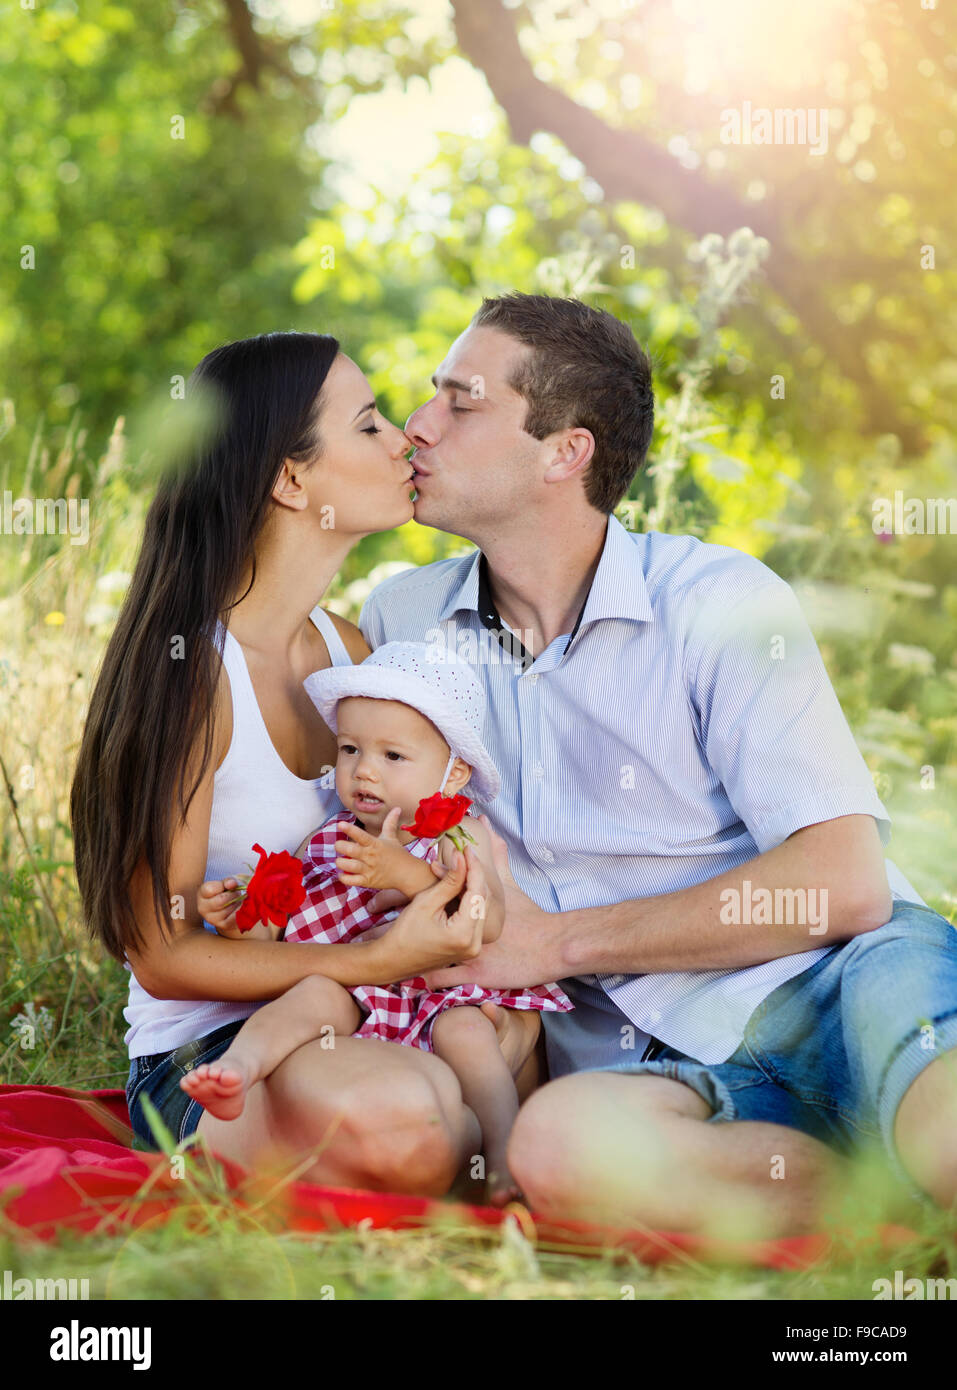 dating a woman with a young daughter